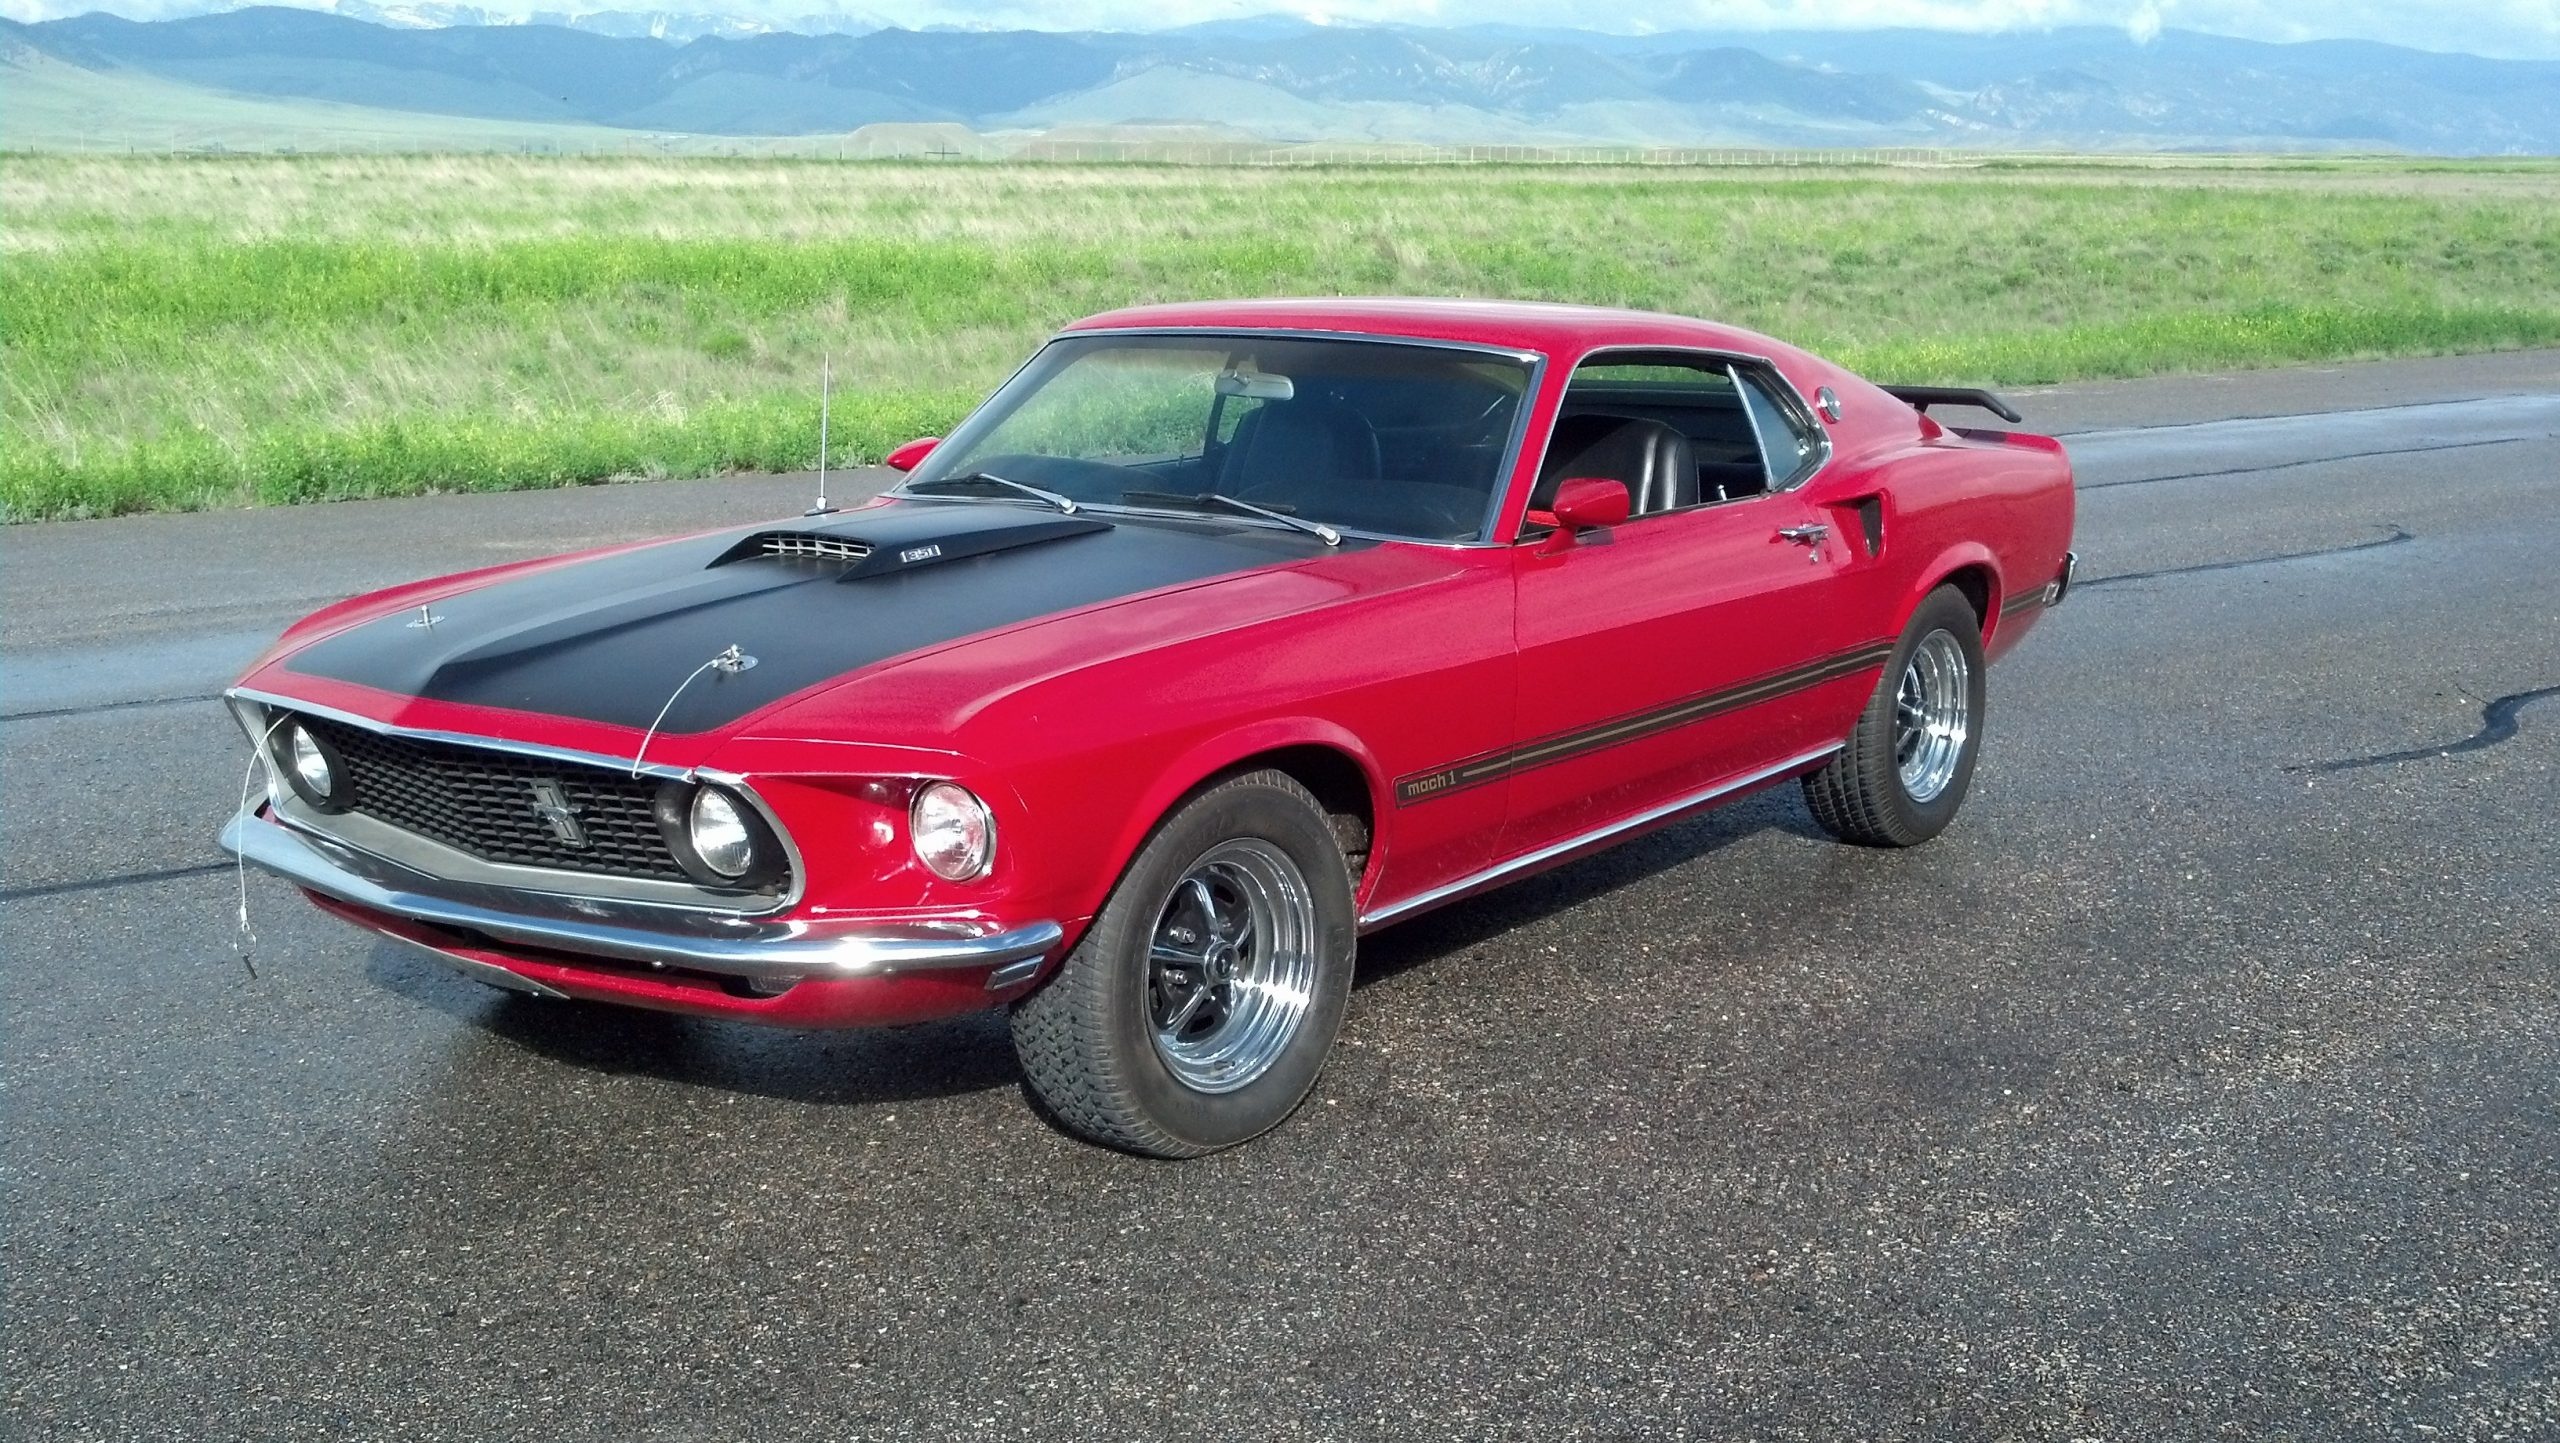 1969 Ford Mustang Mach 1 Wallpaper